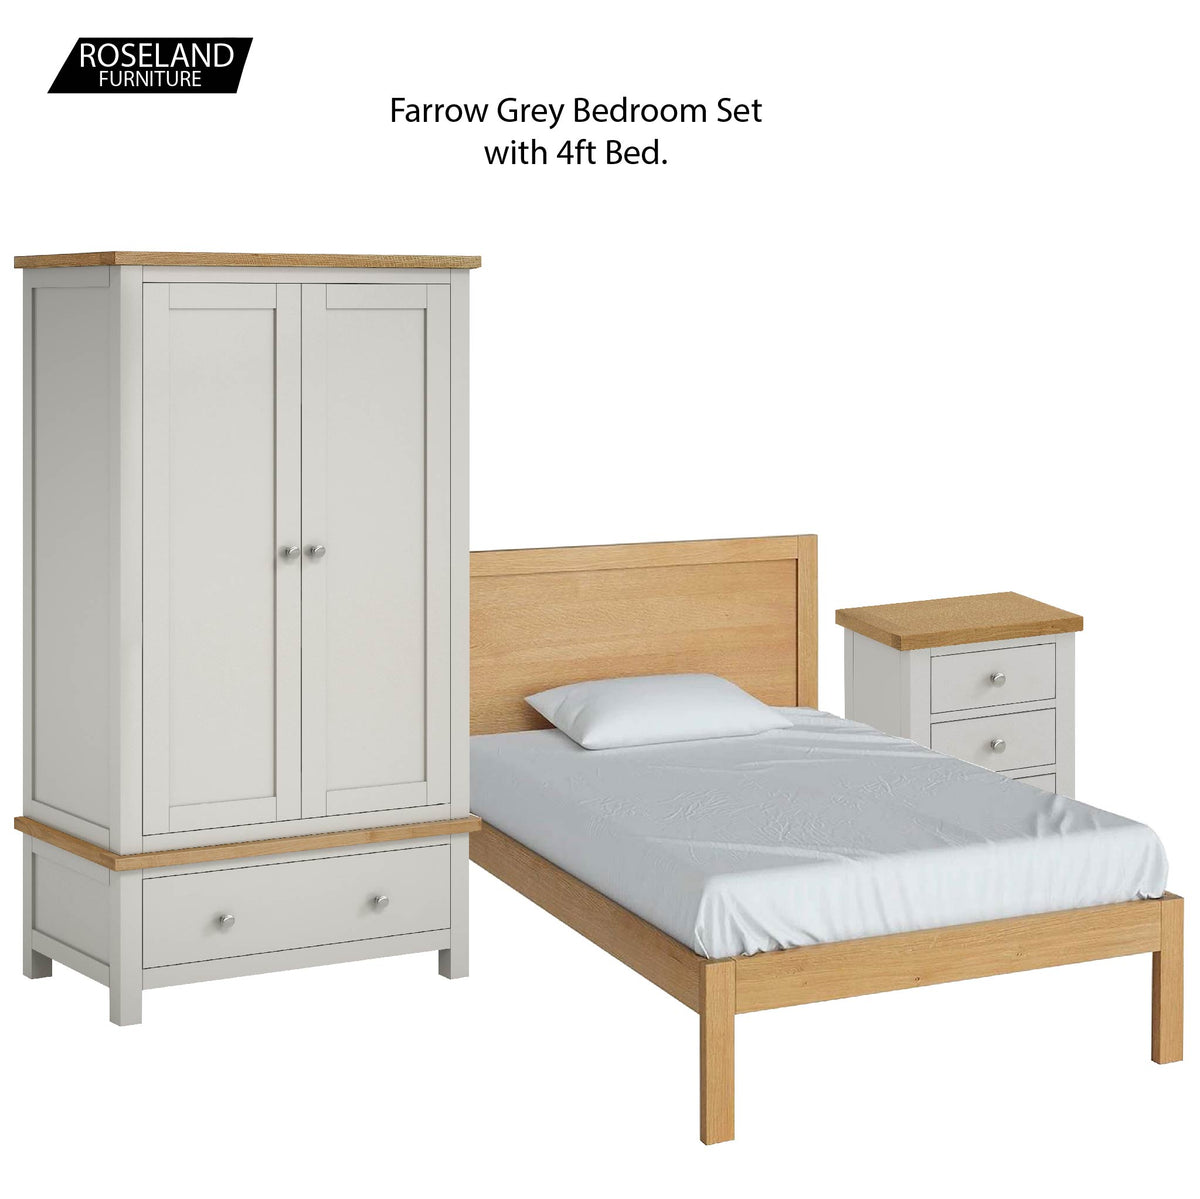 Farrow Grey Bedroom Set with 4ft Bed, Wardrobe and Bedside Drawers